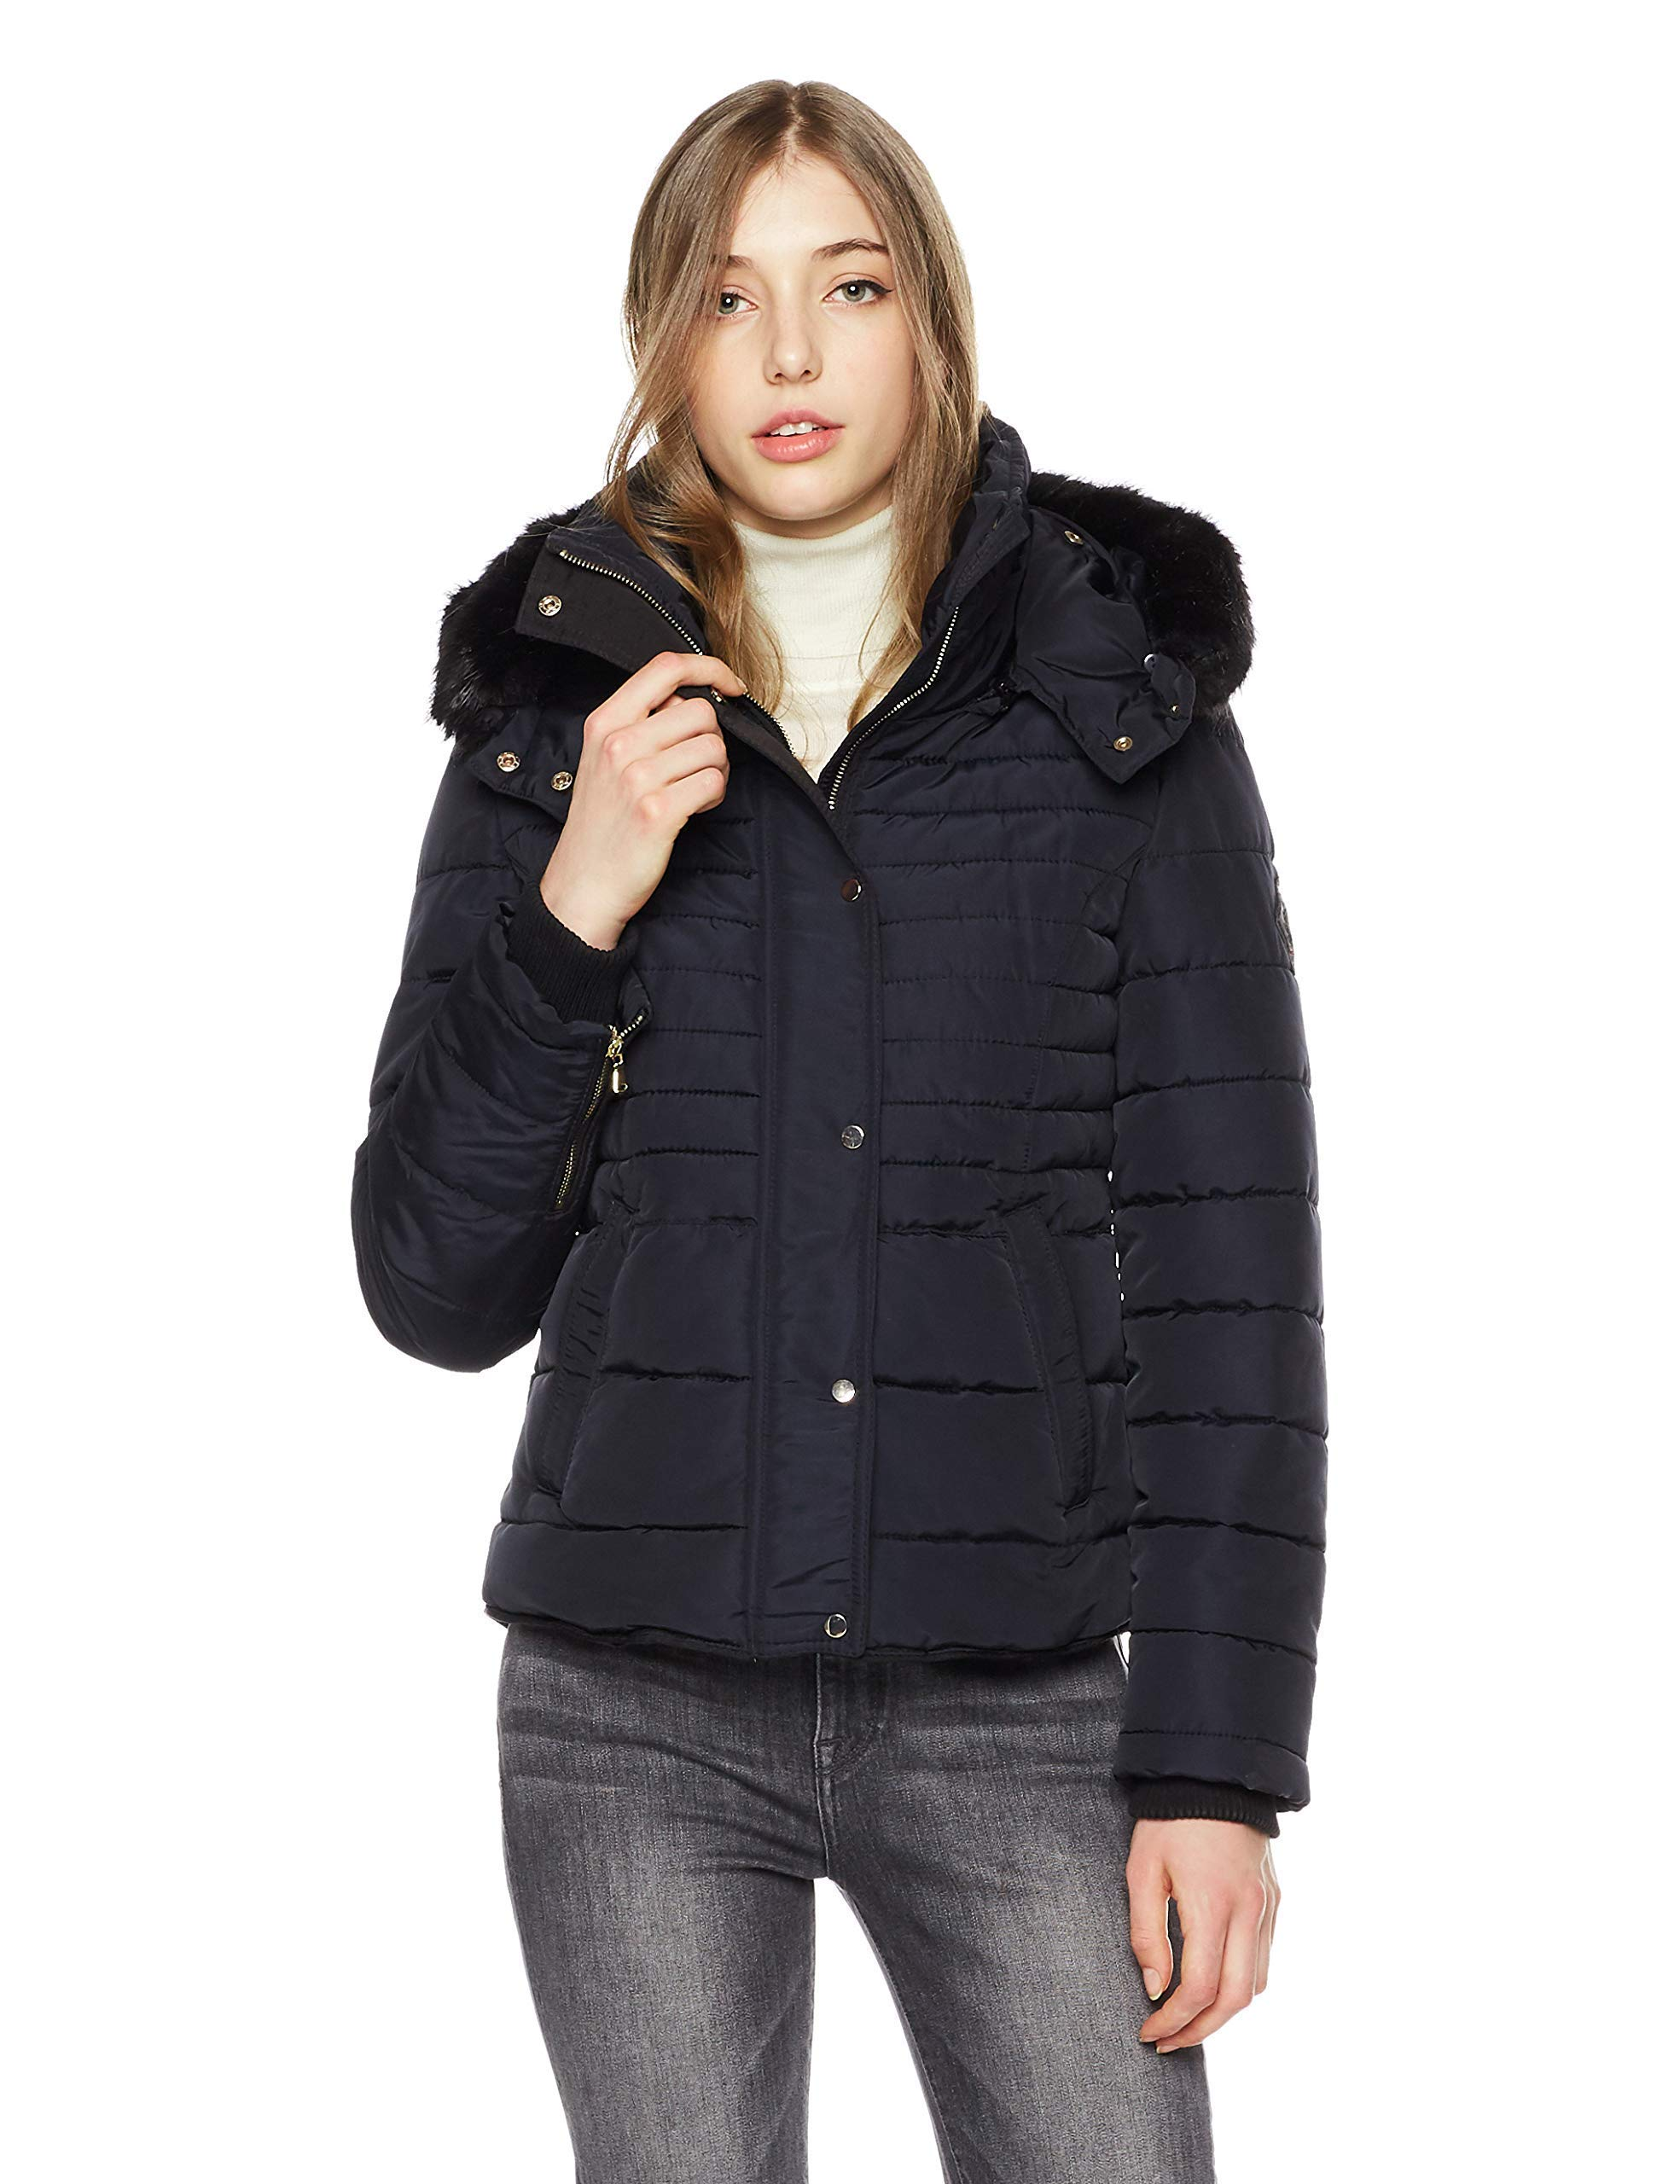 Royal Matrix Womens Classic Bomber Short Down Jacket with Removable Faux Fur Casual Coat